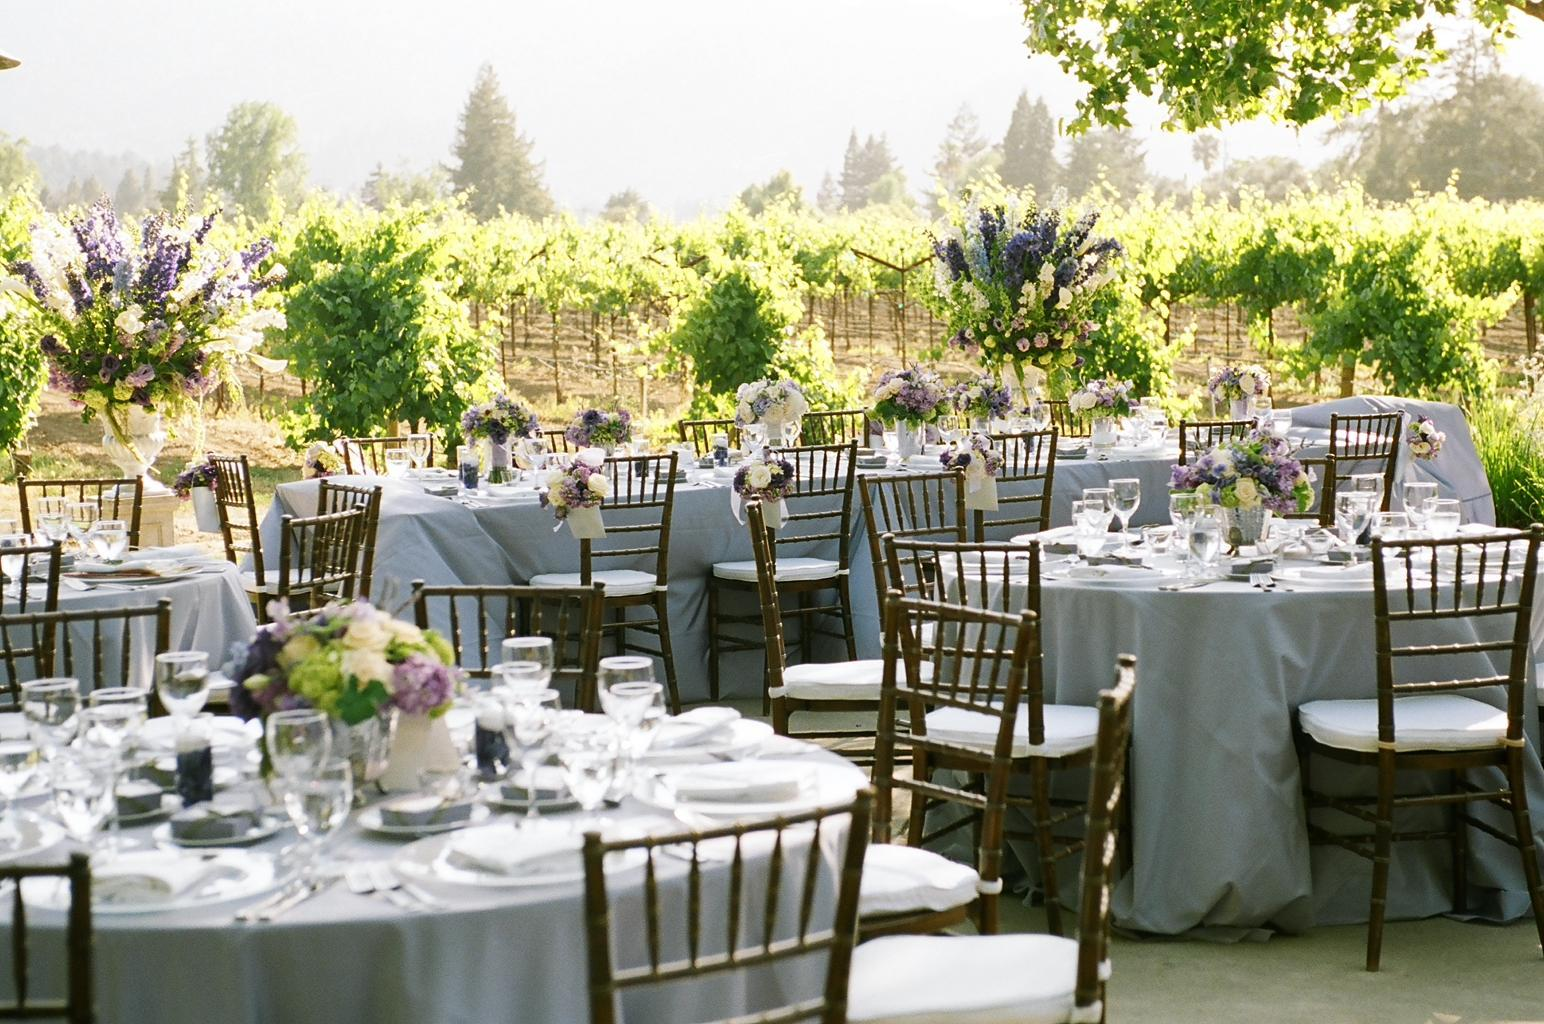 Vineyard Wedding Flowers & Decor